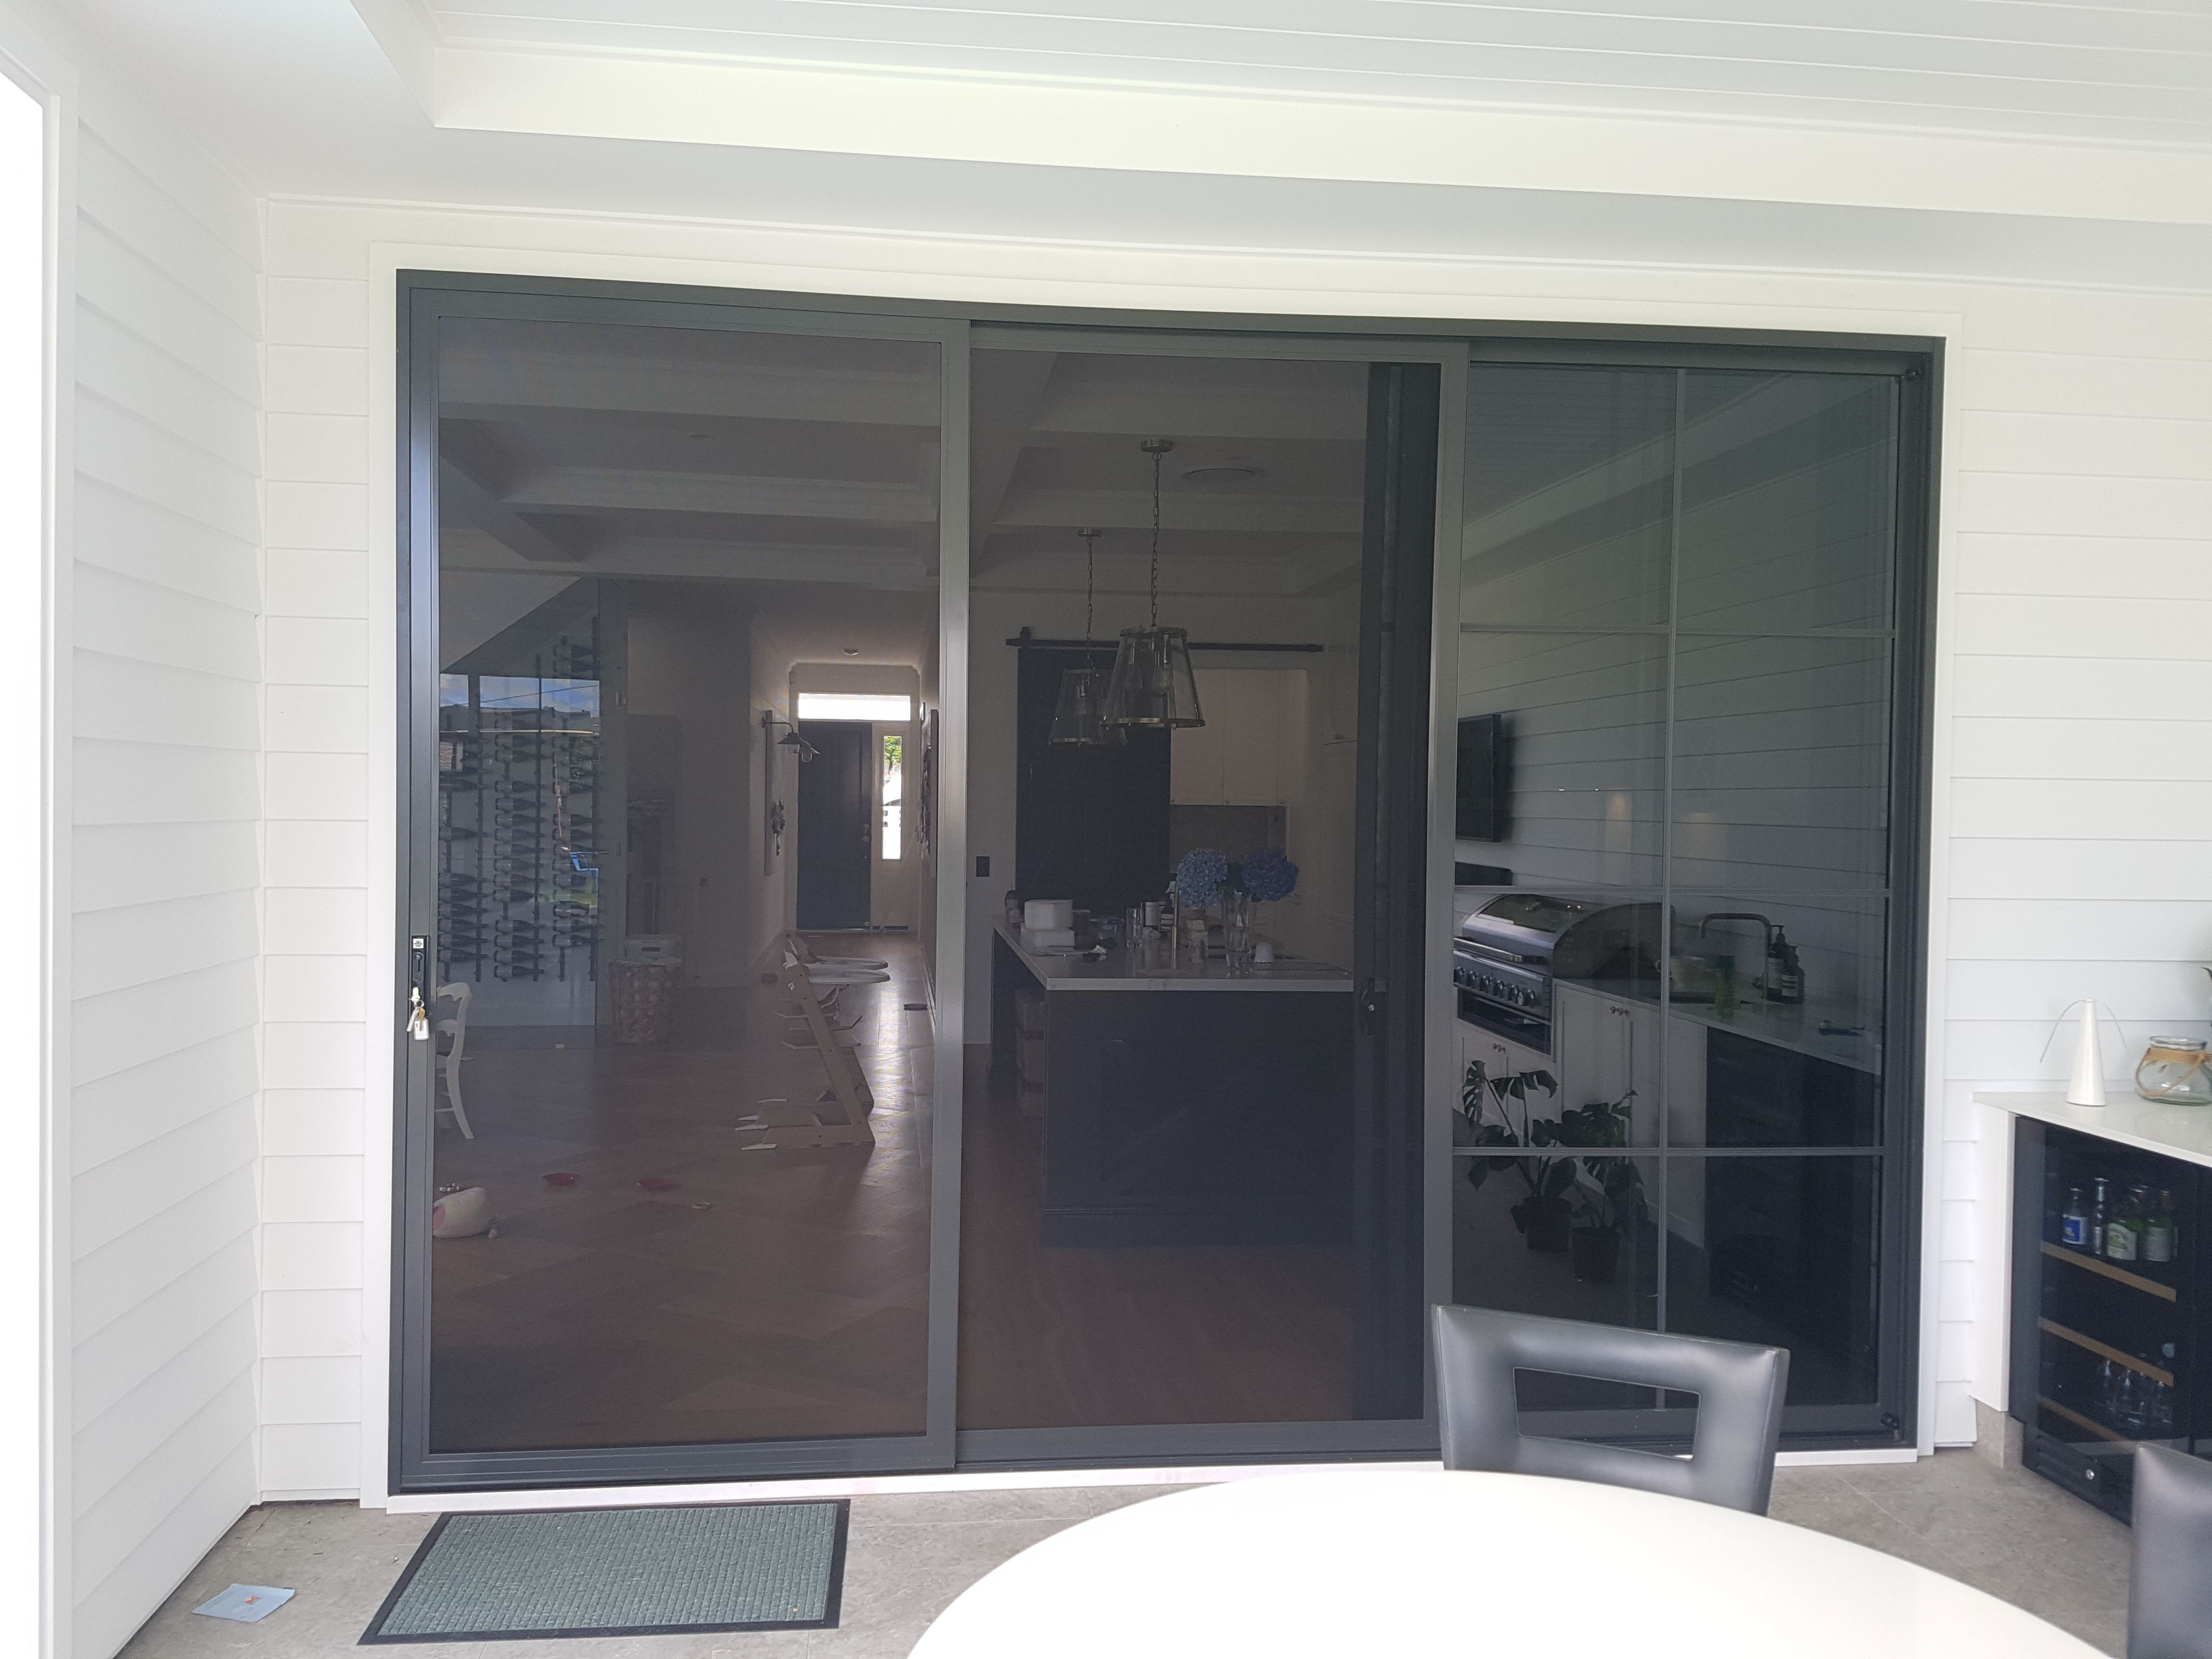 Prowler Proof double stacking sliding security doors